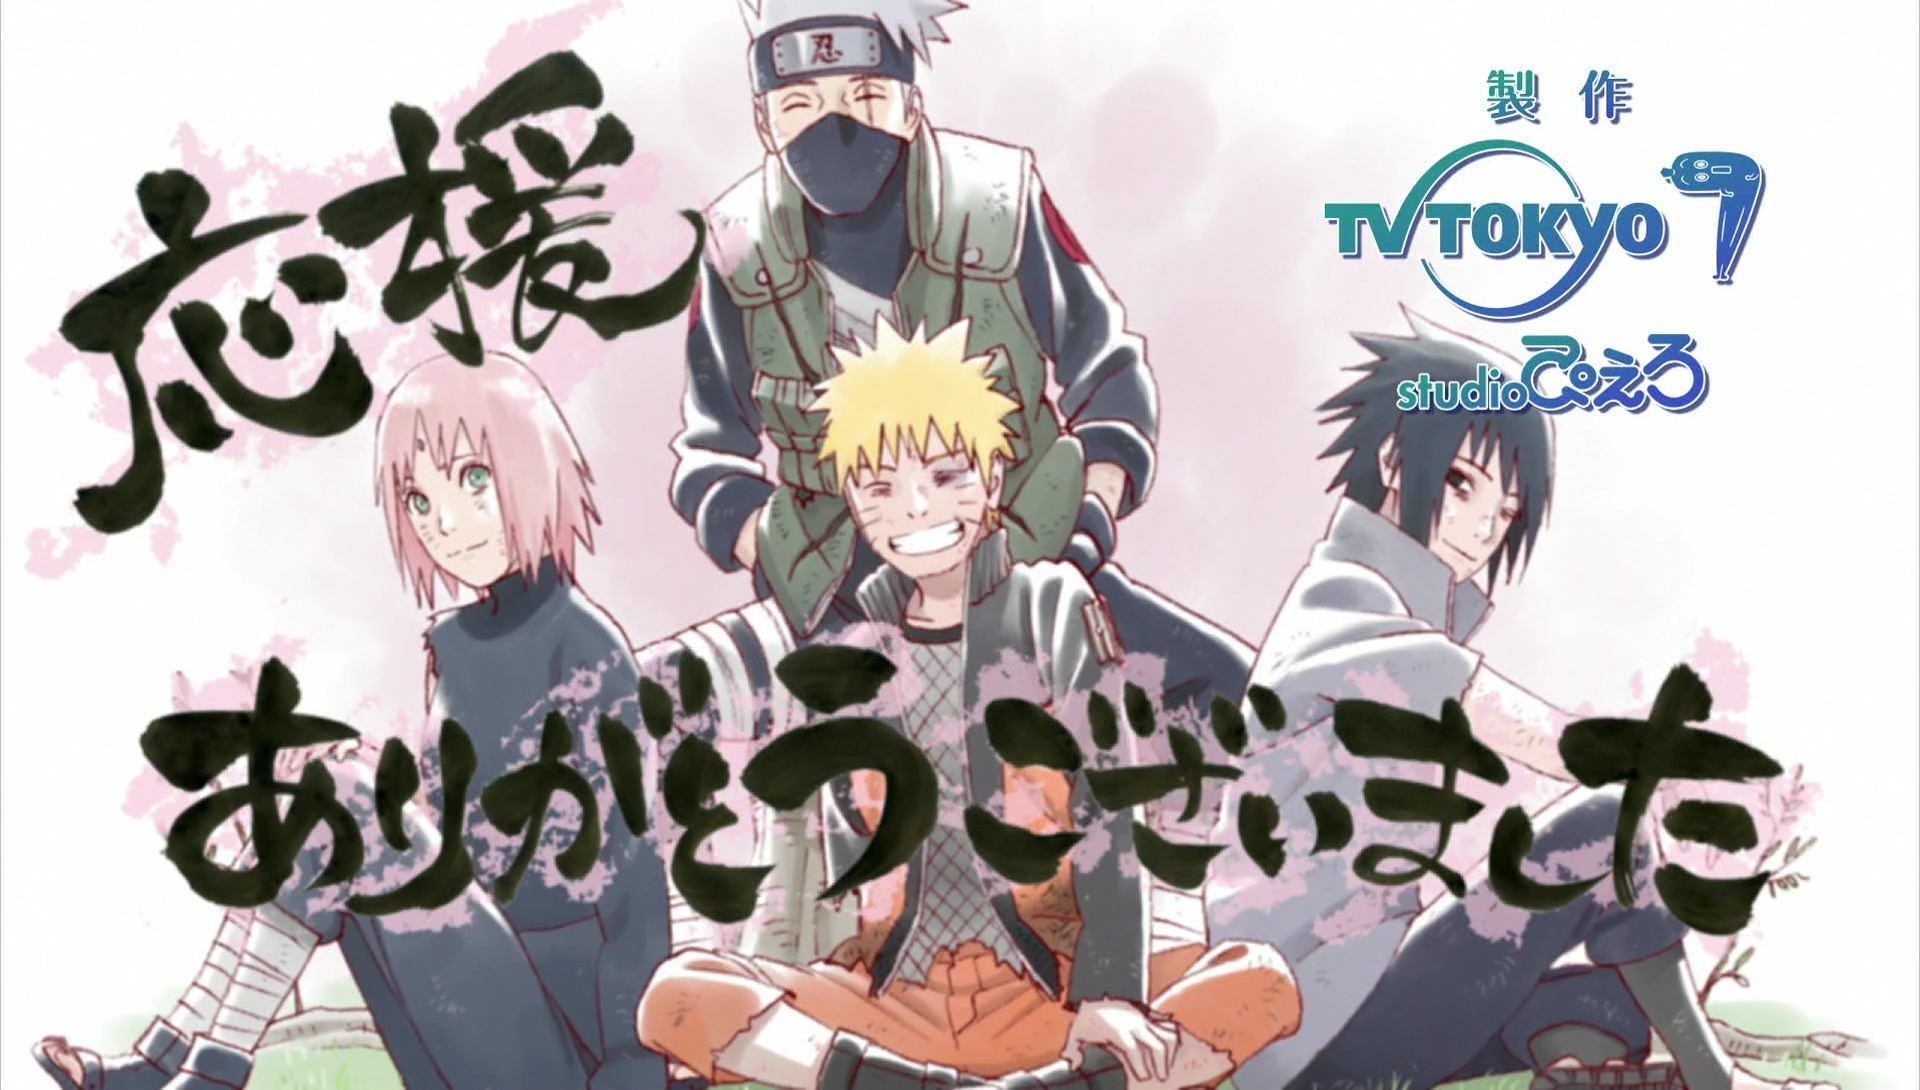 Naruto: Shippuuden Episode 500 Discussion (100 - ) - Forums